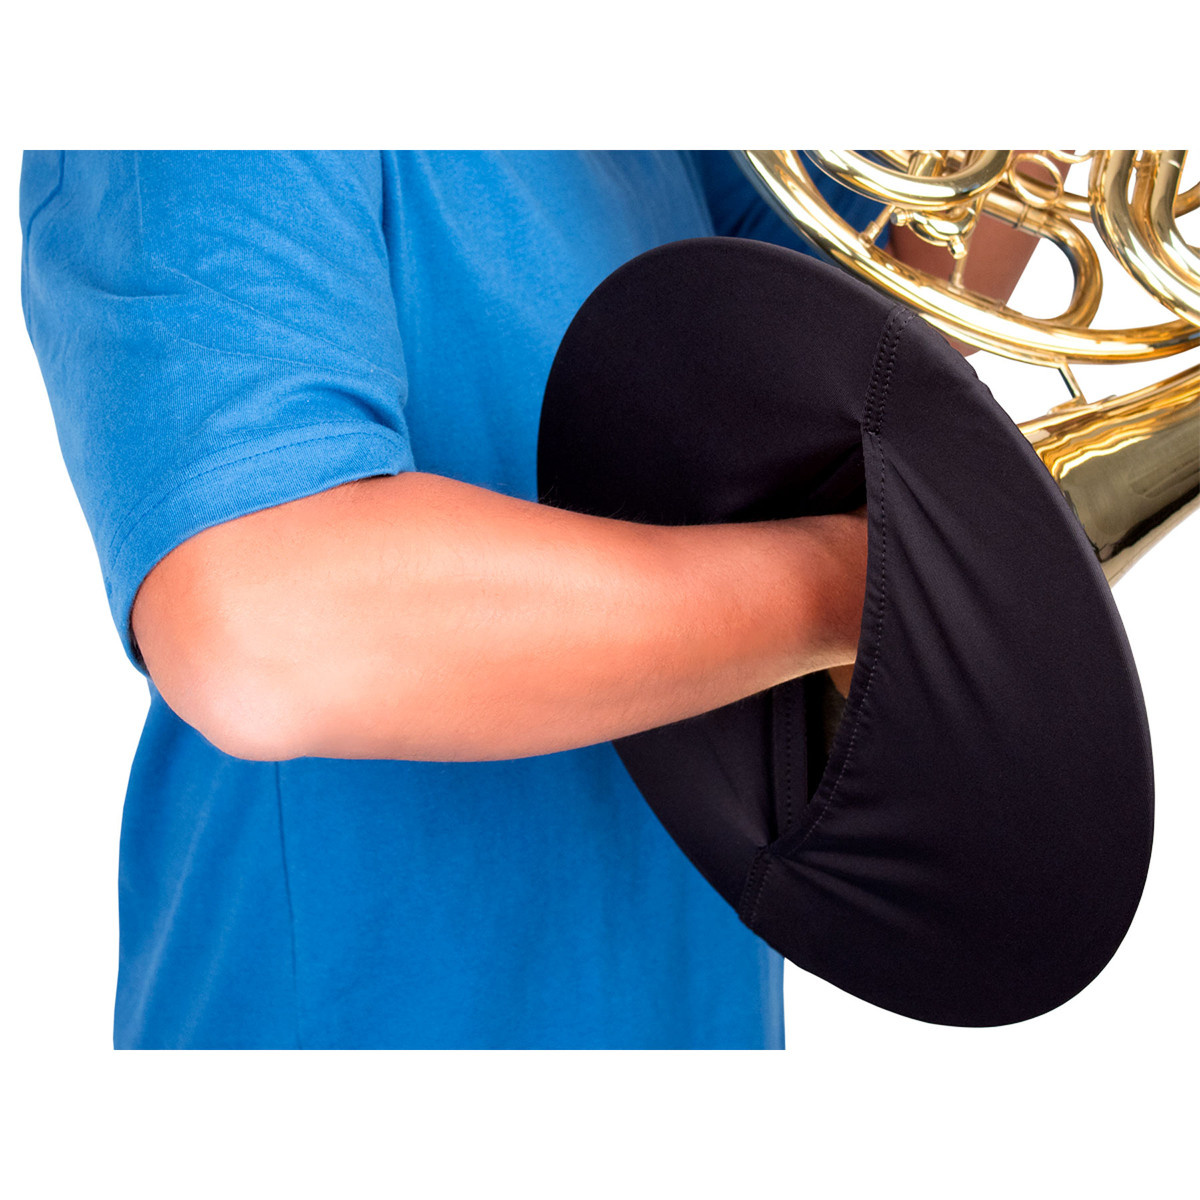 Protec Bell cover for tenor sax, trombone, French horn, and more